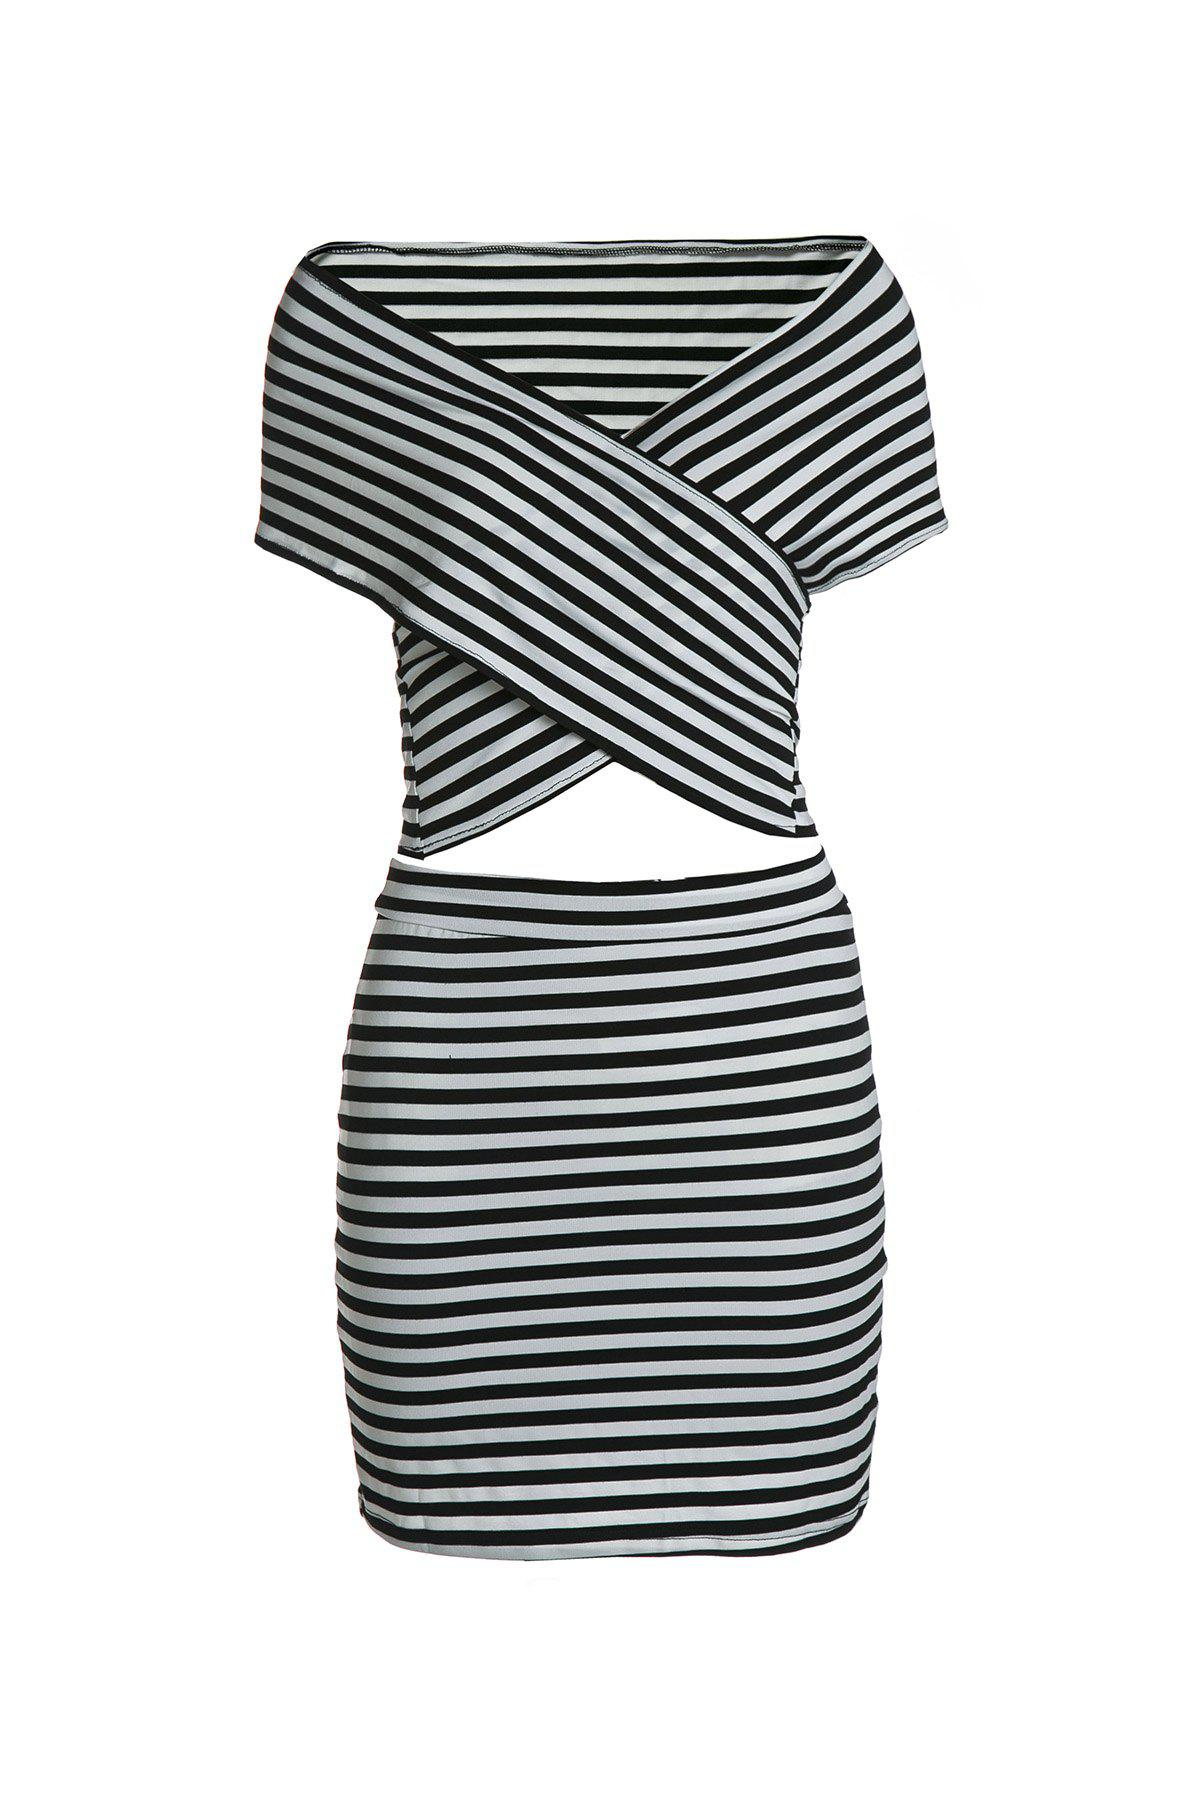 Sexy Short Sleeve Bodycon Striped T-Shirt+Sheathy Skirt Twinset For WomenWomen<br><br><br>Size: S<br>Color: WHITE AND BLACK